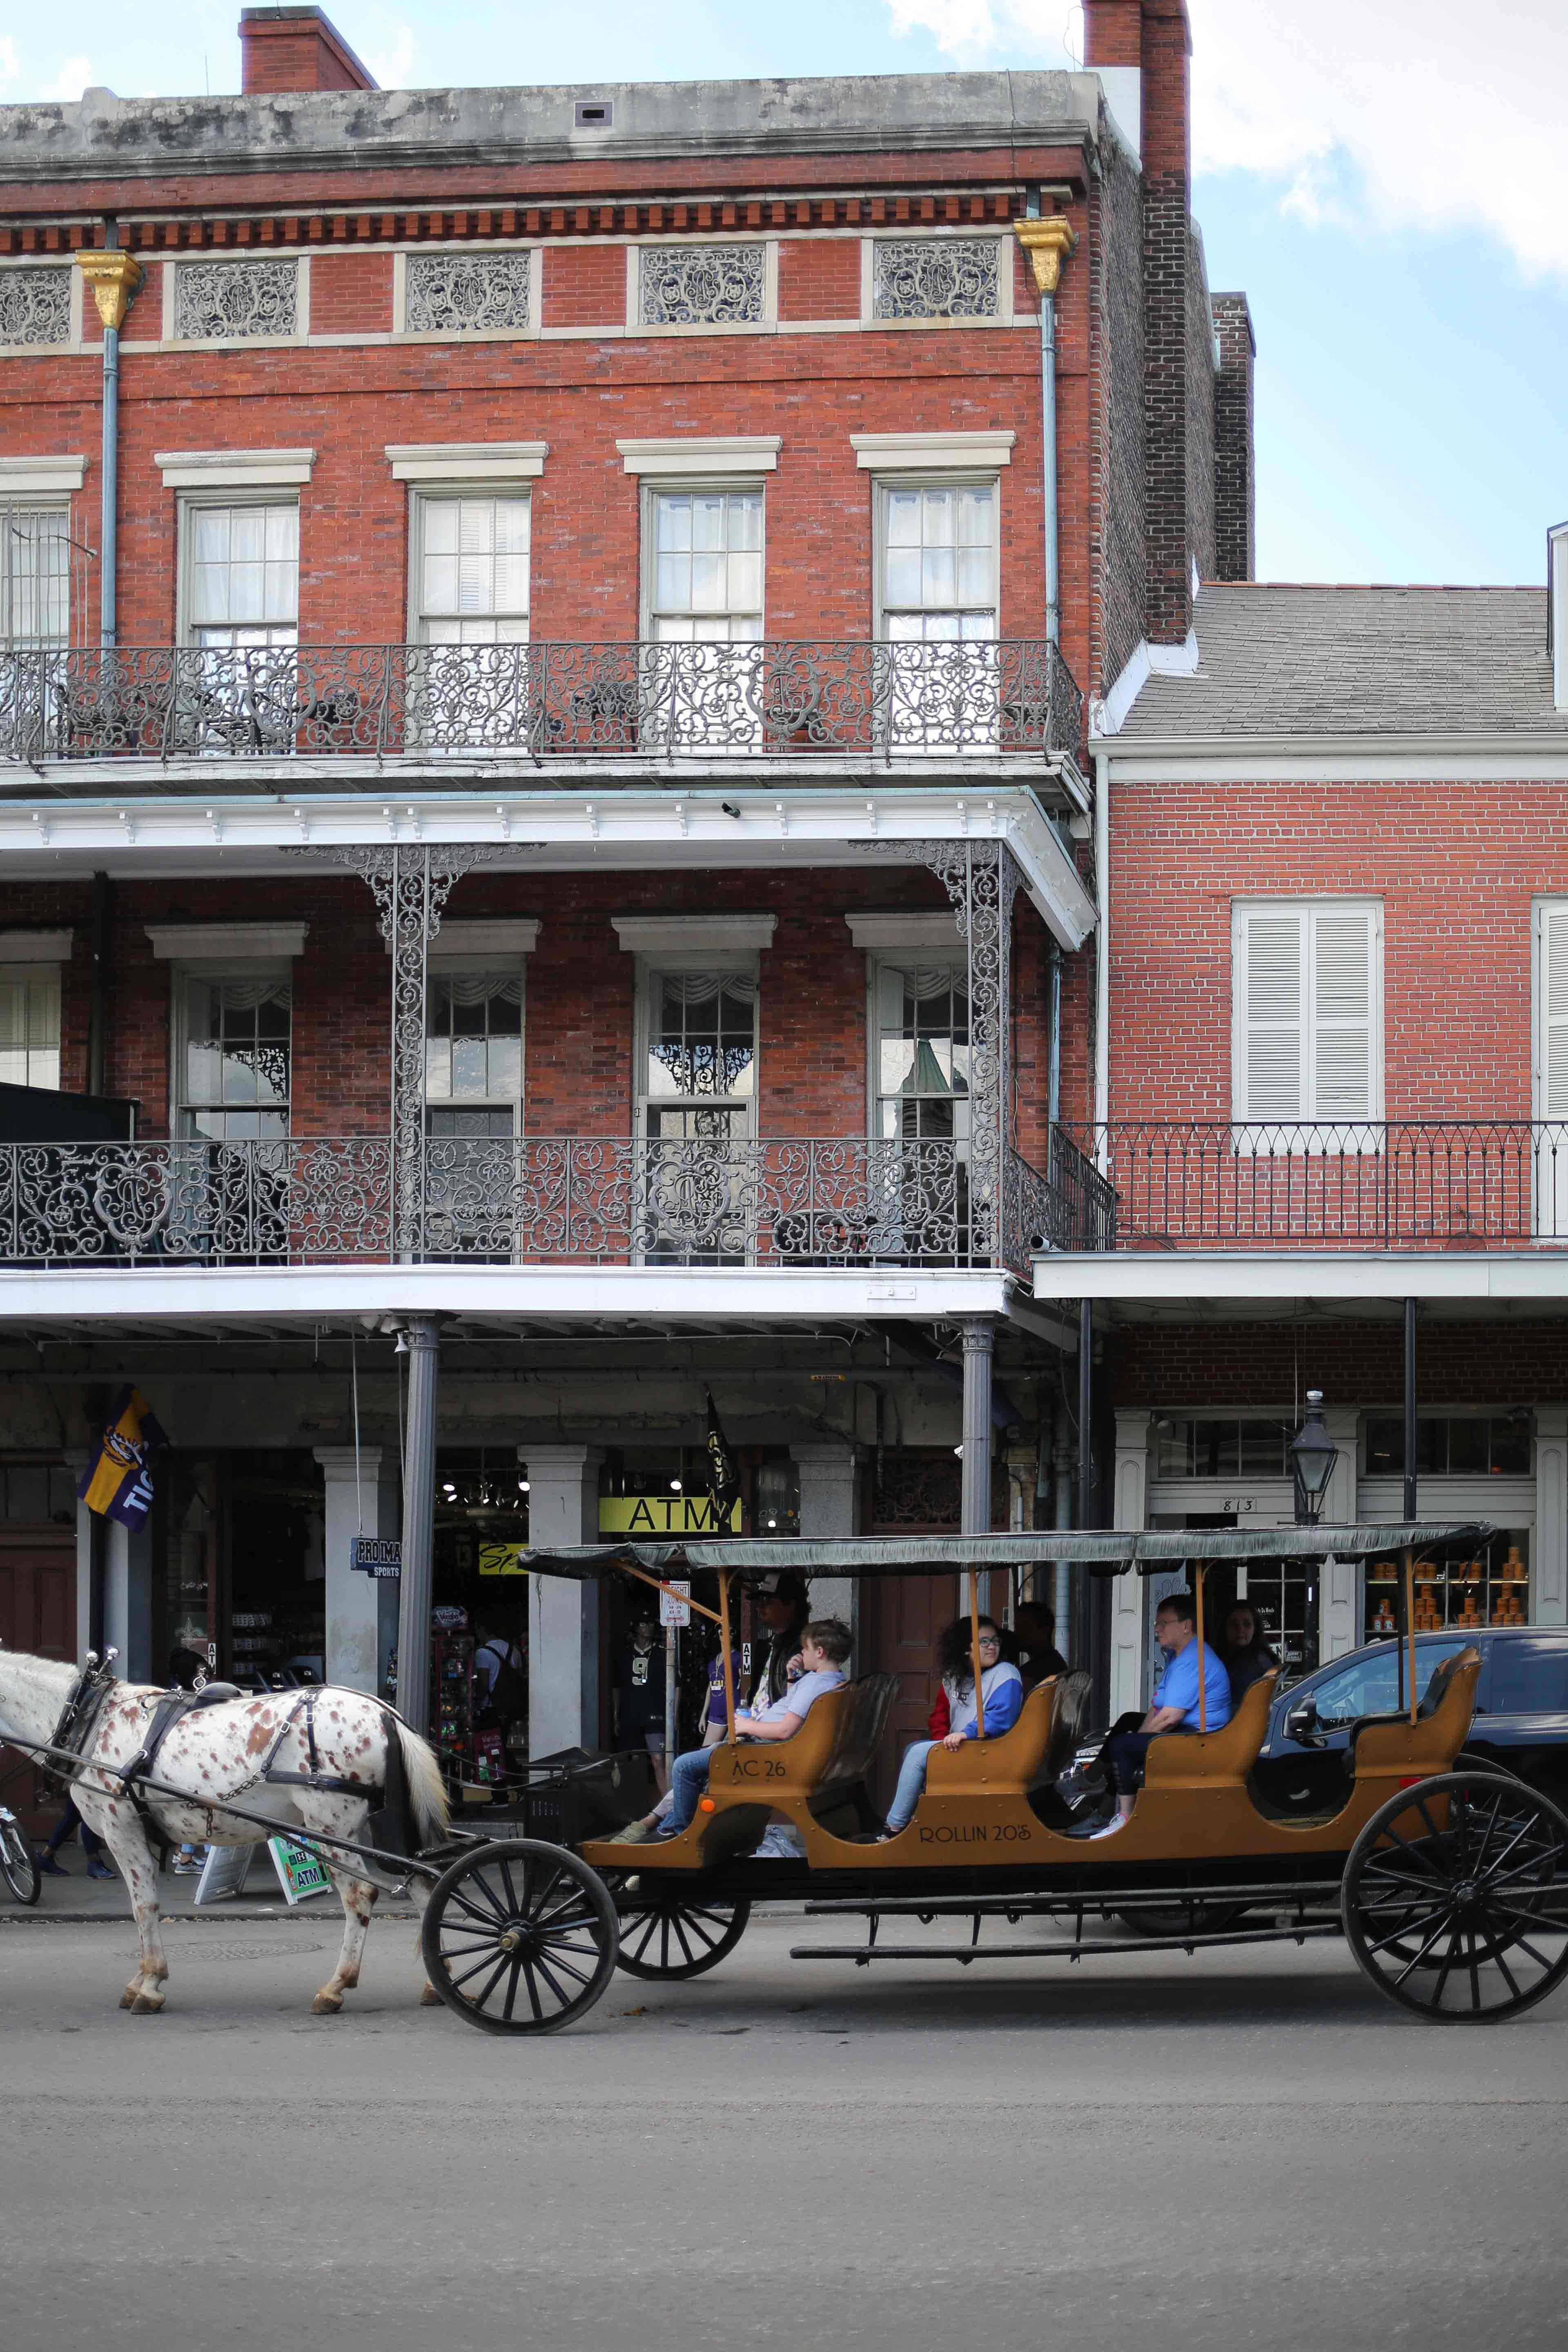 Horse French Quarter New Orleans Travel Guide - NOLA City guide - by fashion blogger Julia Comil